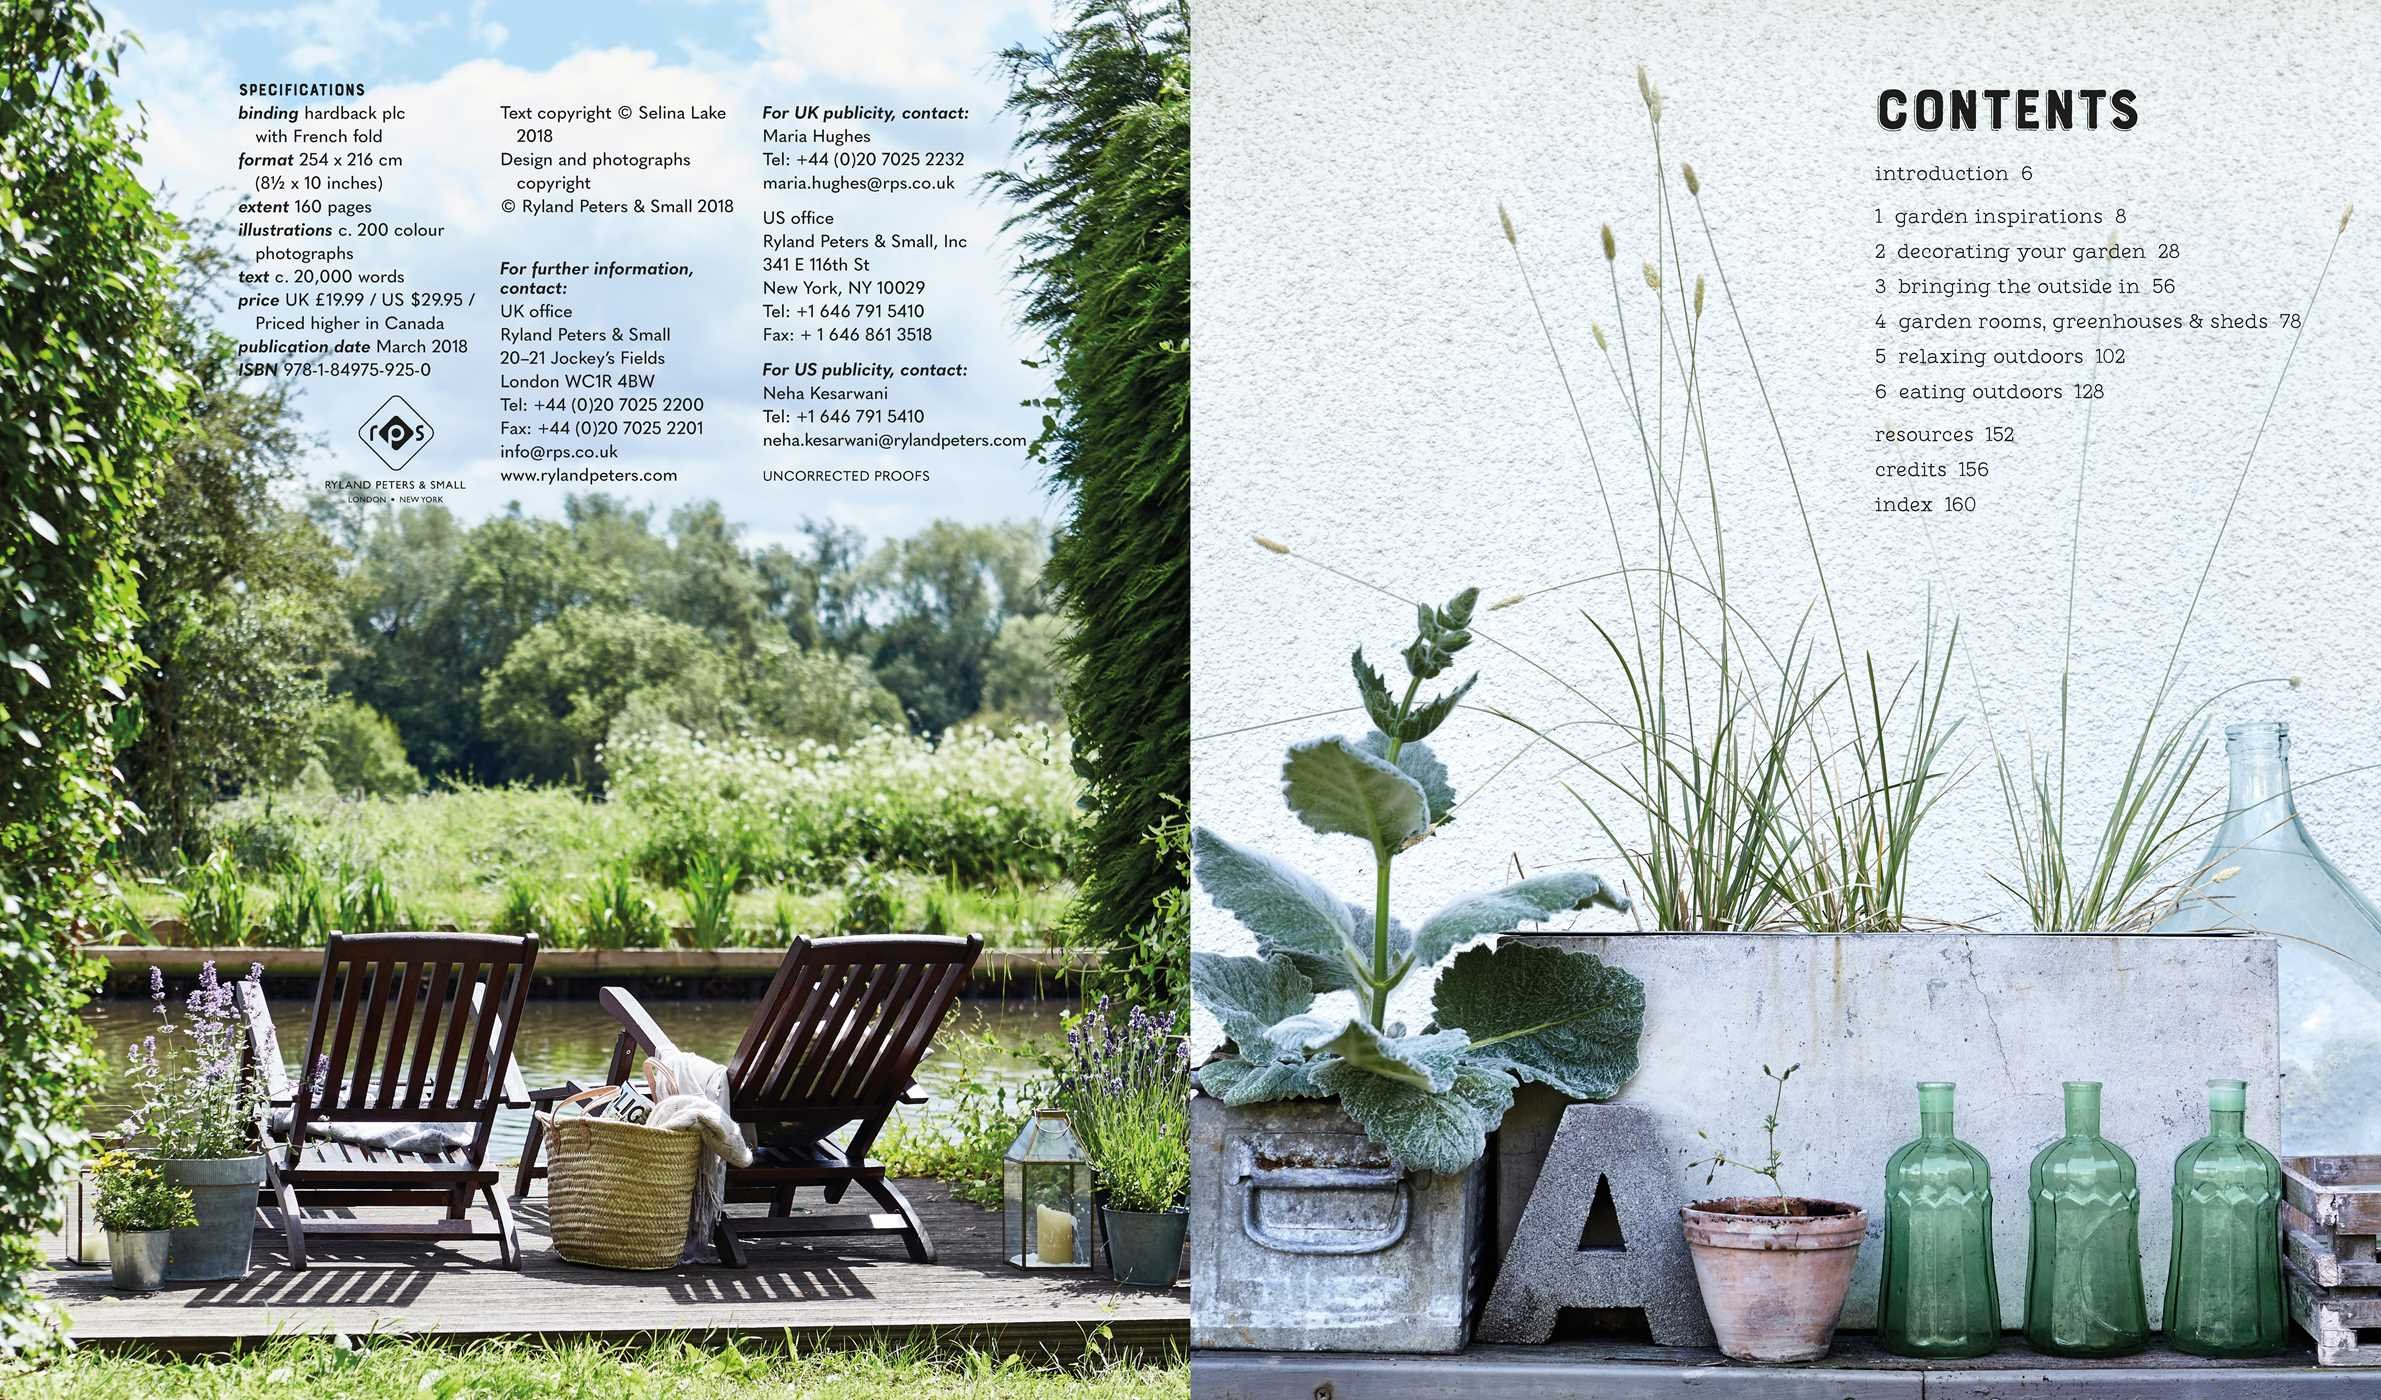 Selina Lake Garden Style Inspirational Styling for your Outside